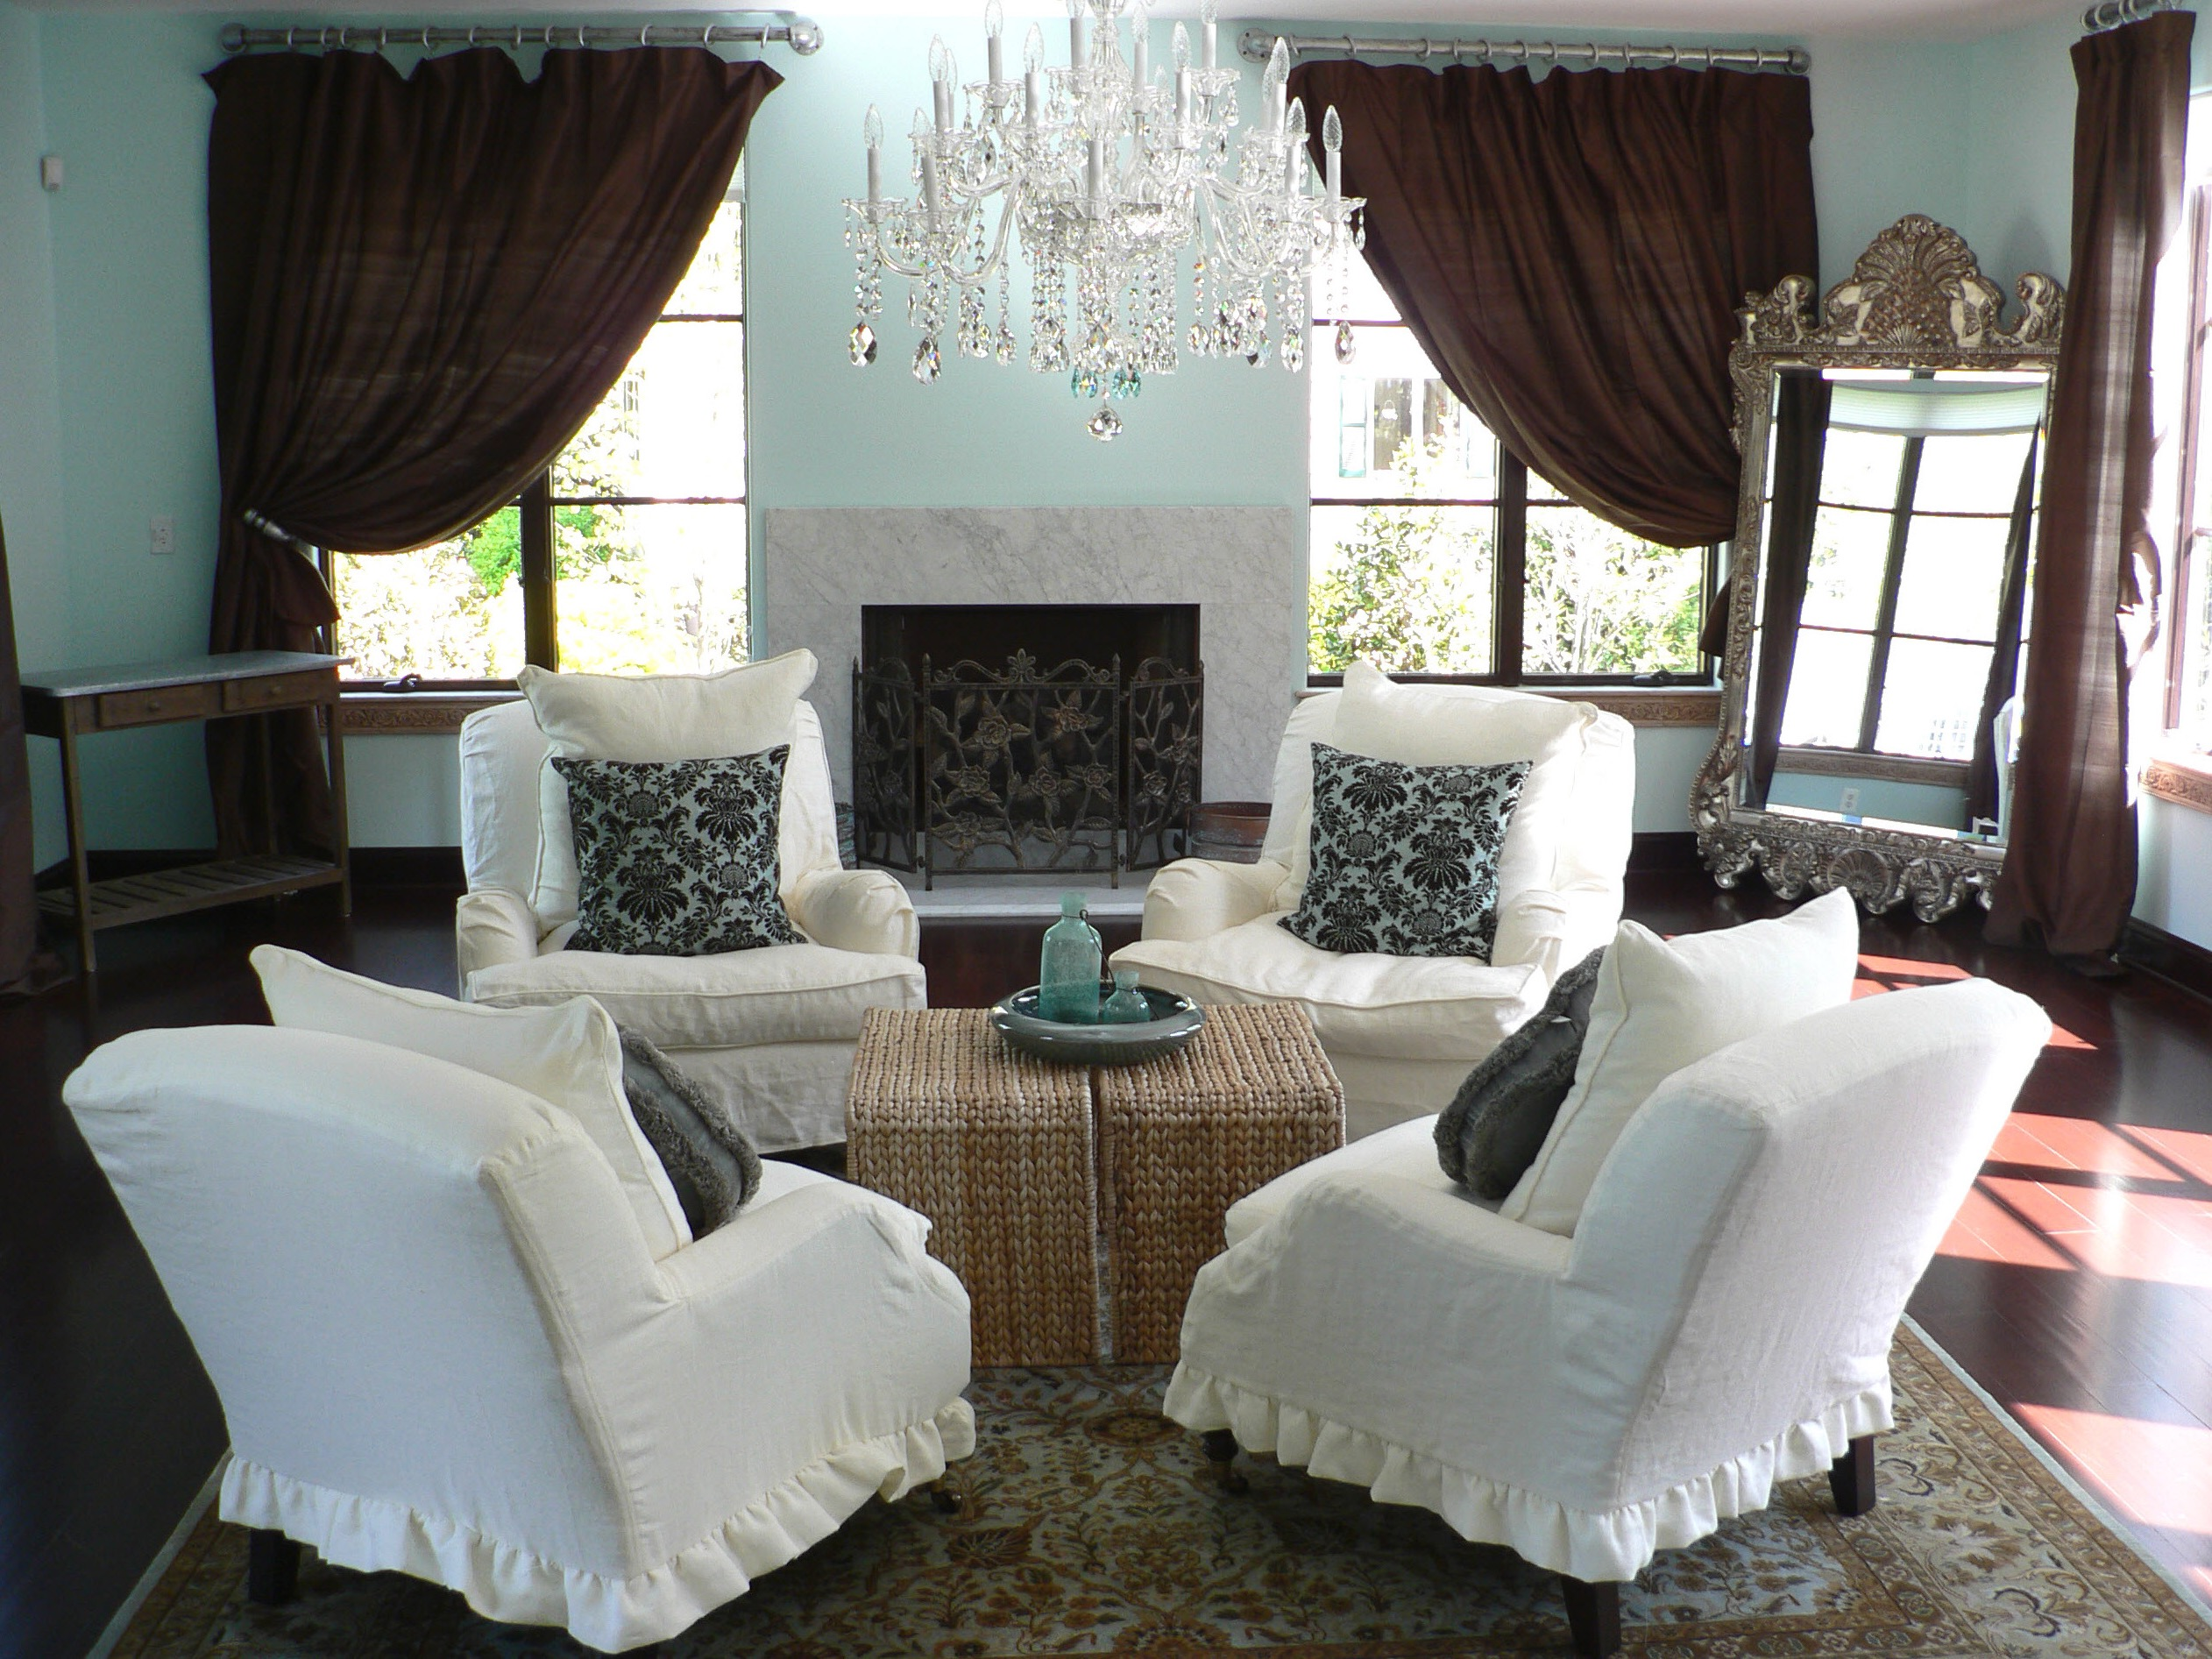 French Country Living Room With Rattan Table (View 1 of 18)